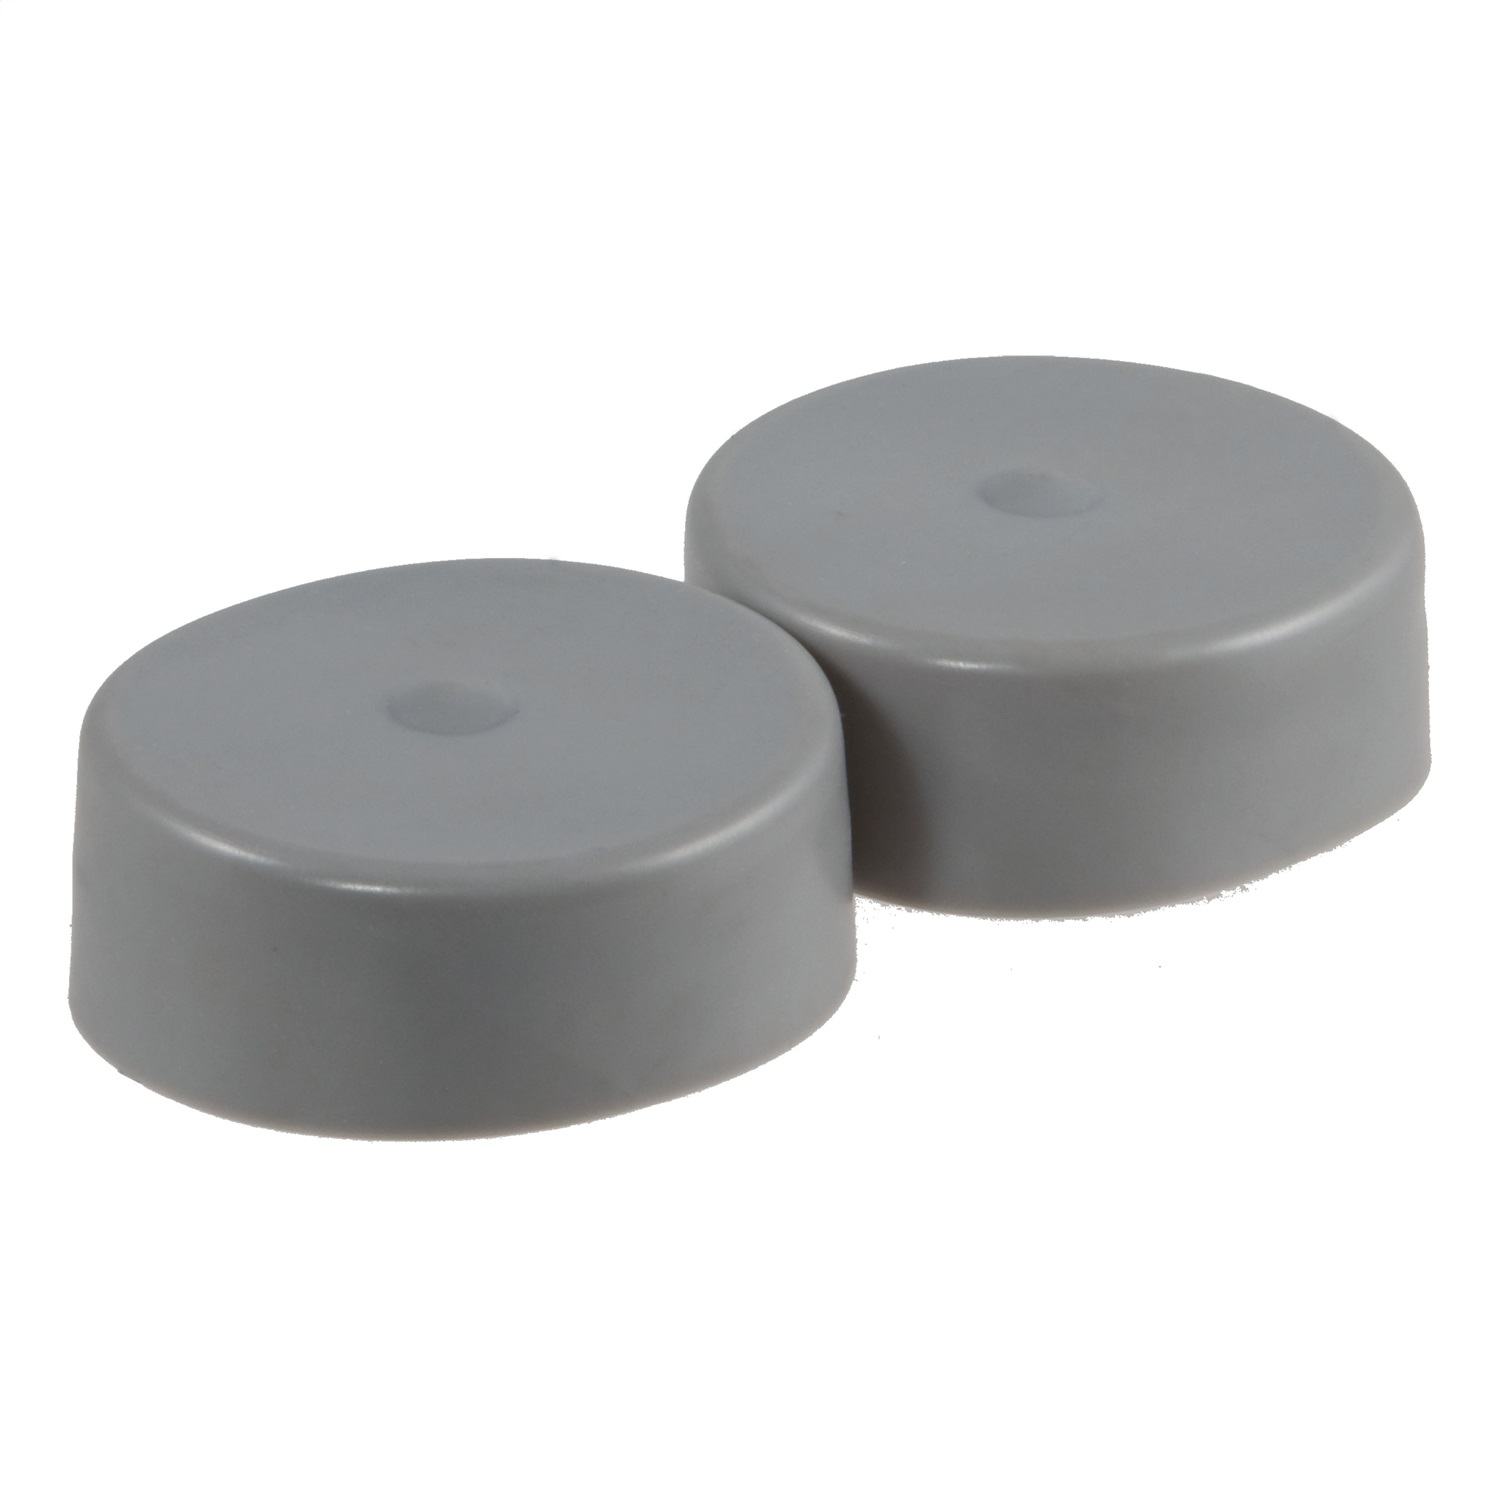 curt-manufacturing-23244-bearing-protectors-fits